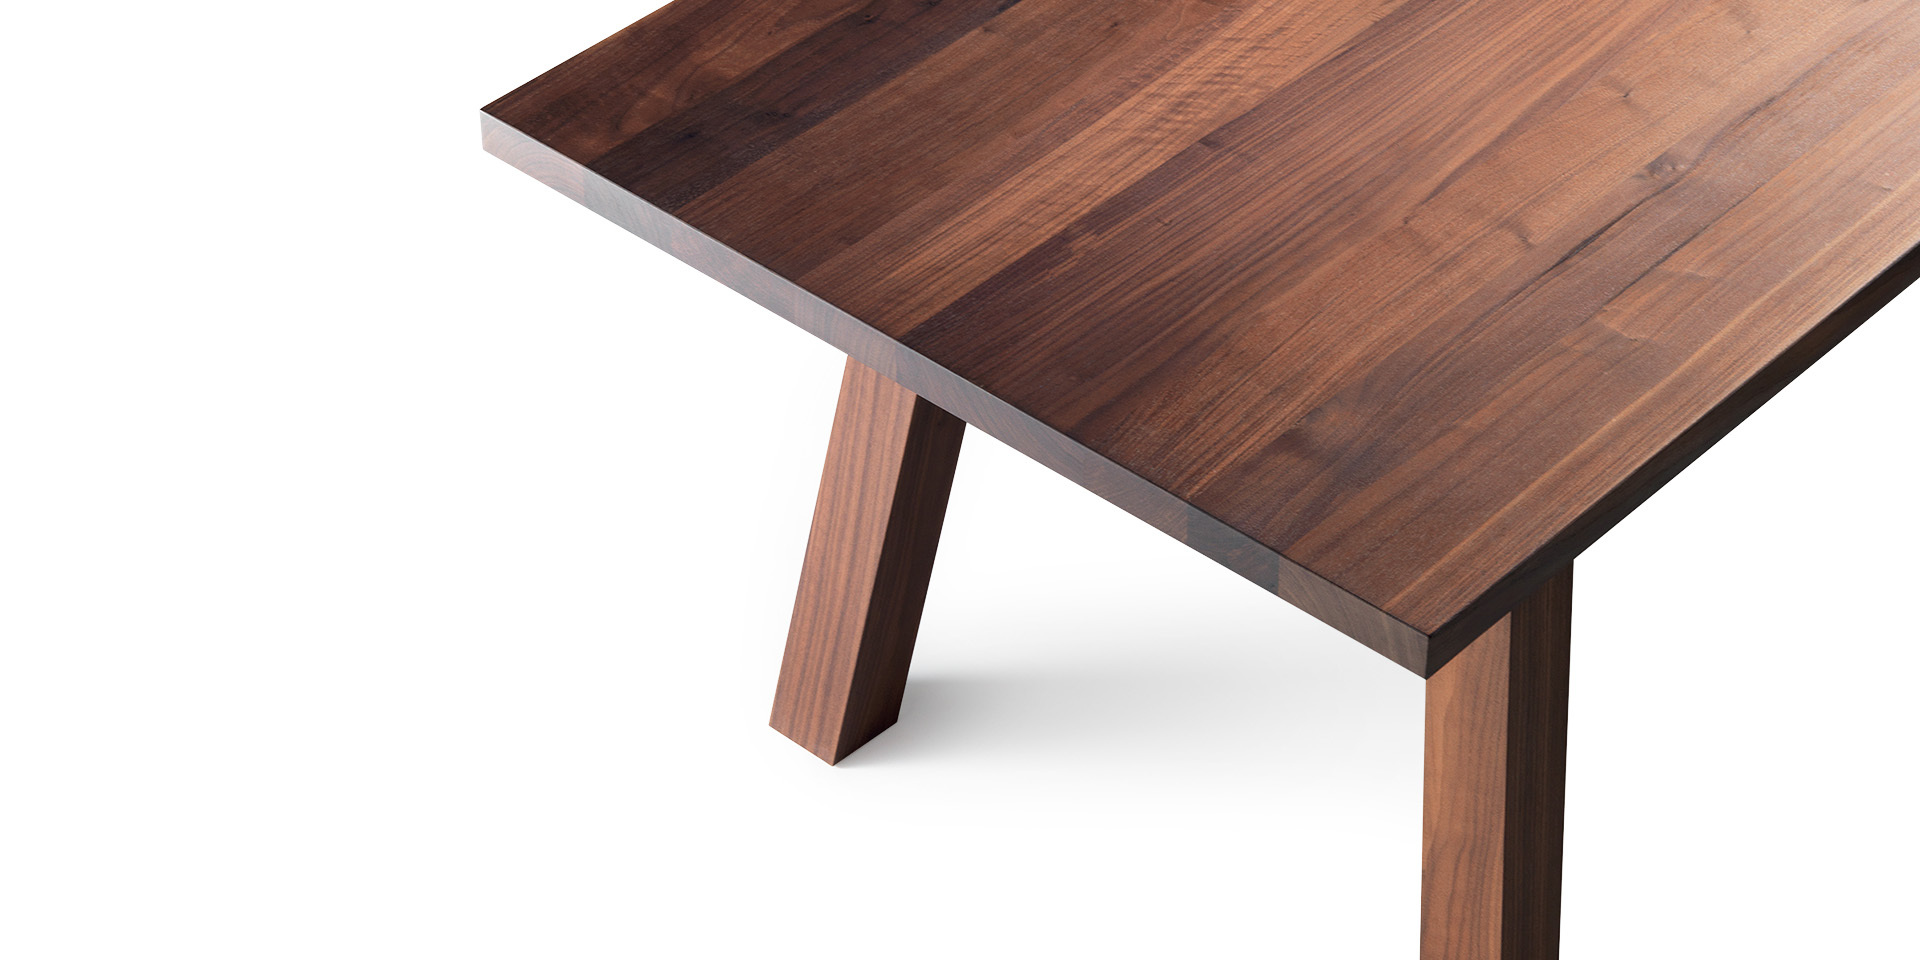 Accento table - oiled walnut